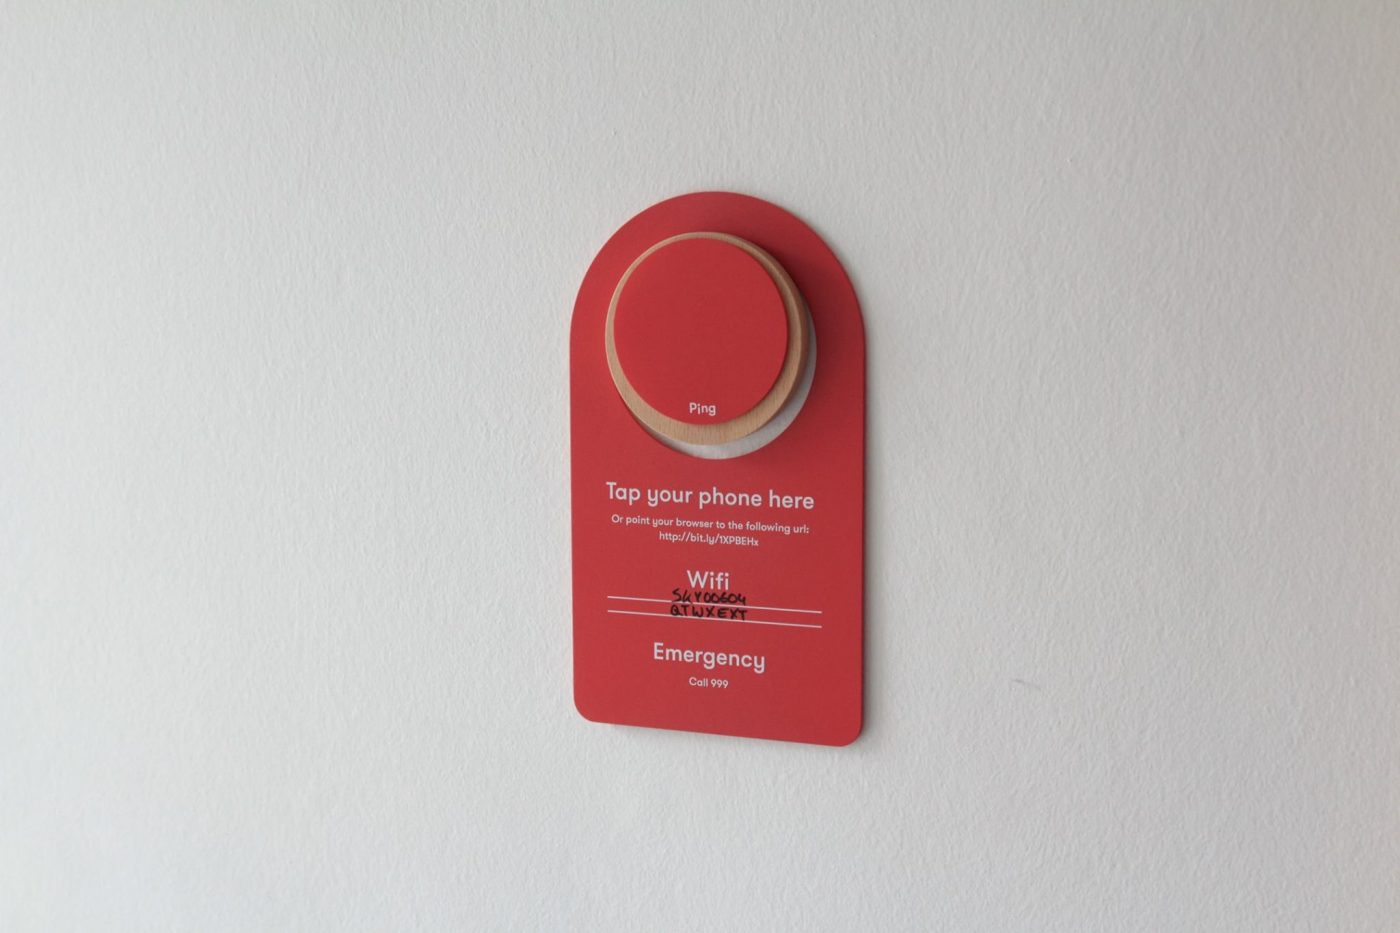 Ping device placed by Airbnb hosts